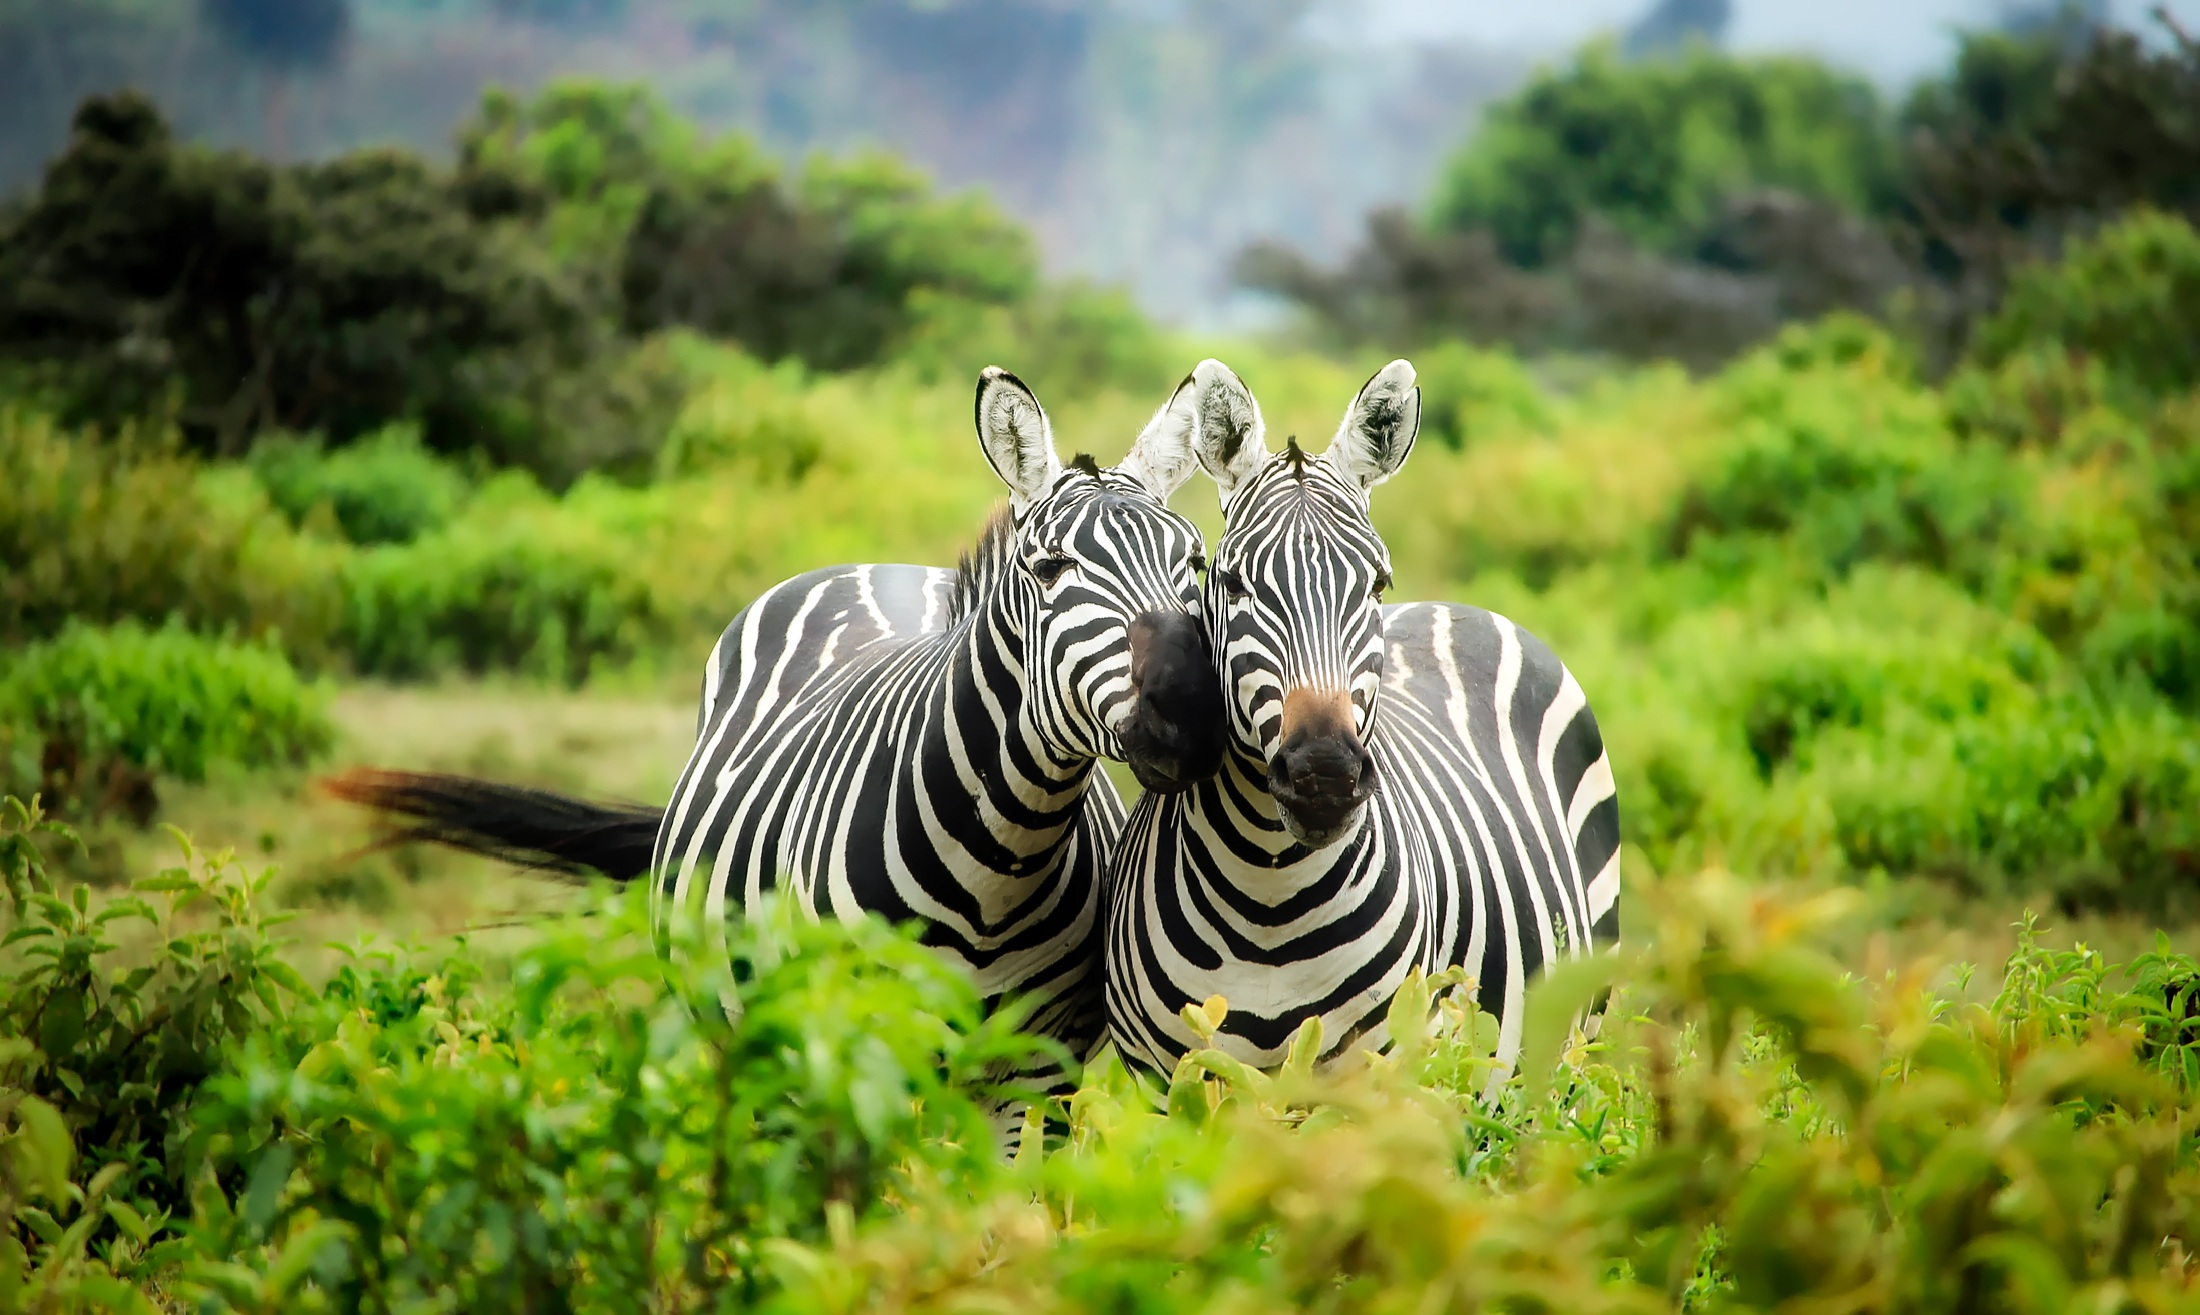 Two zebras nuzzling each other